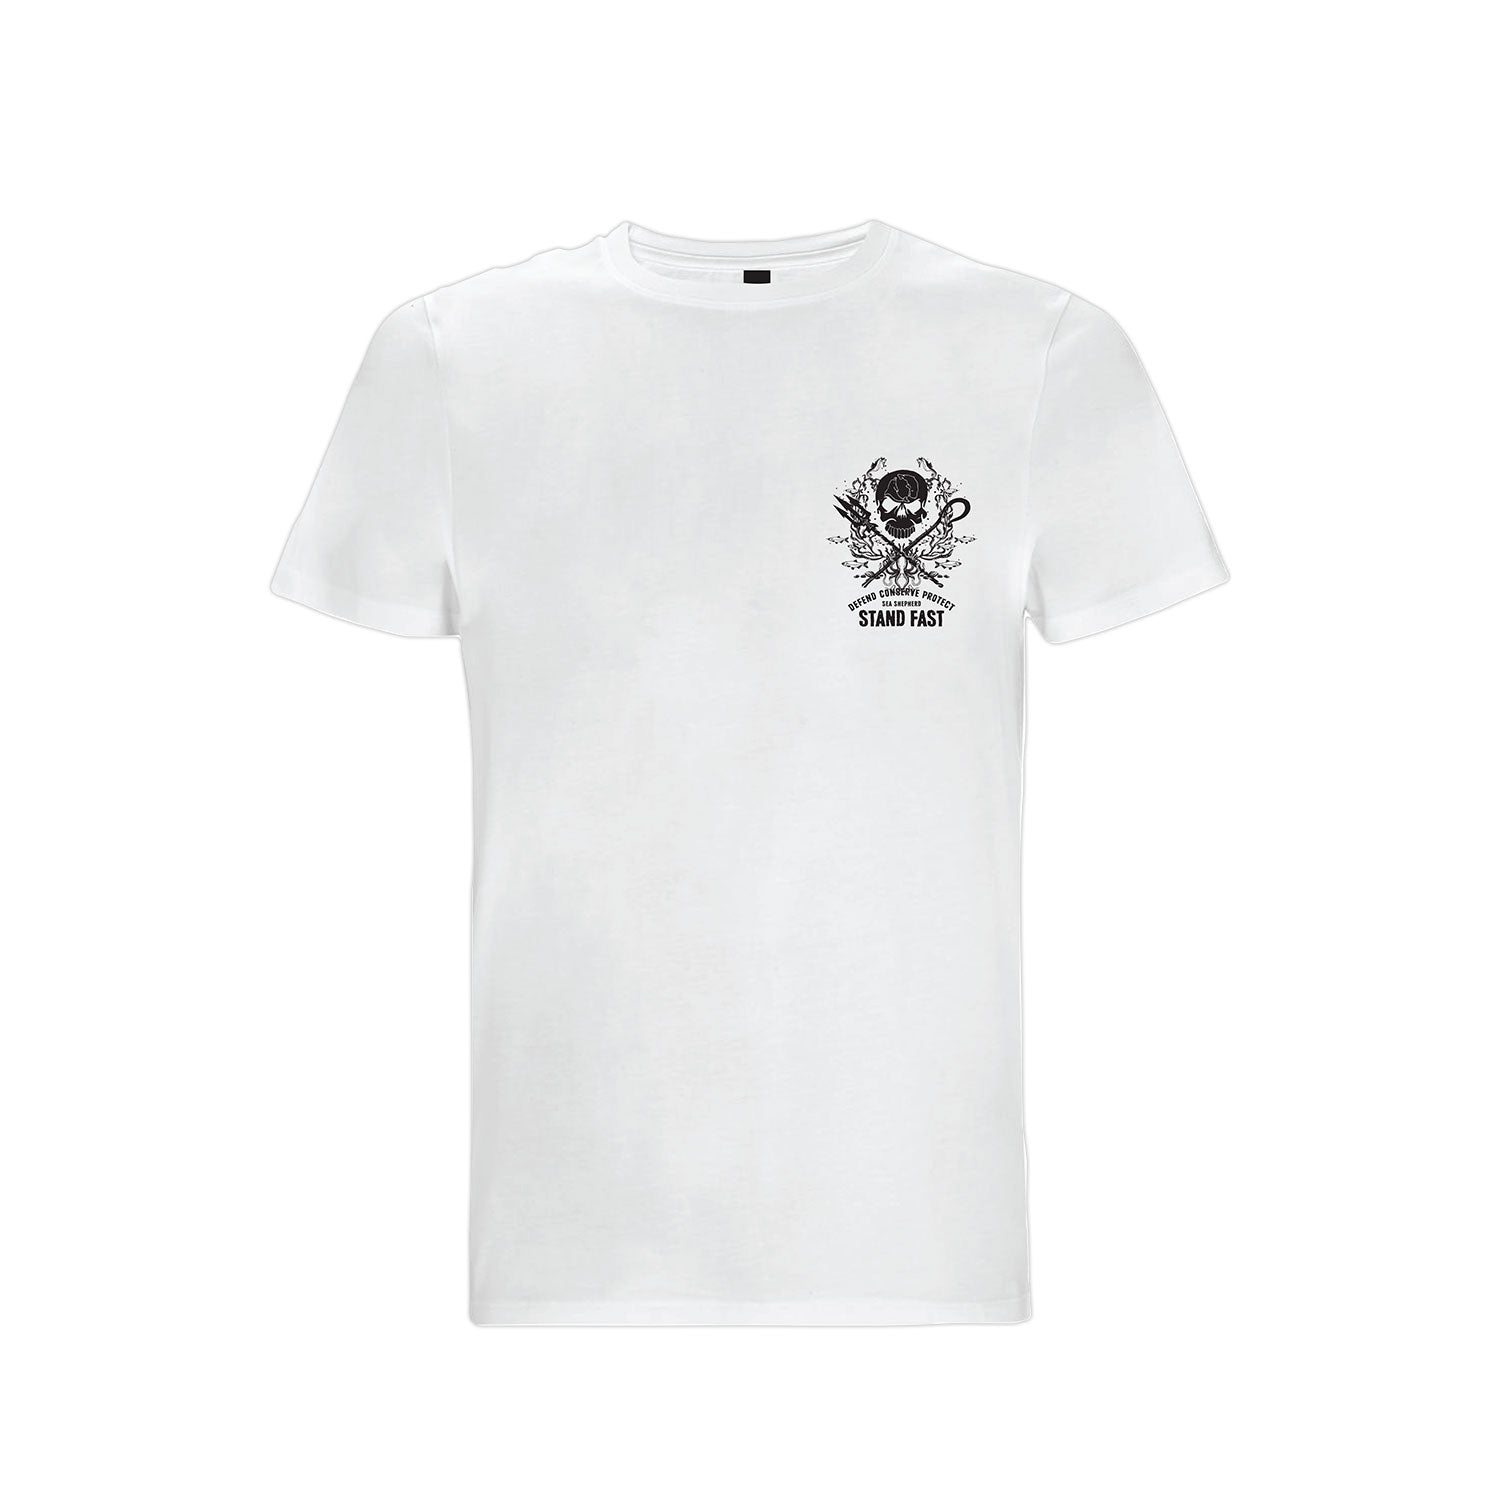 Sea Shepherd Deep Sea Tranquility Organic Jersey Tee - White